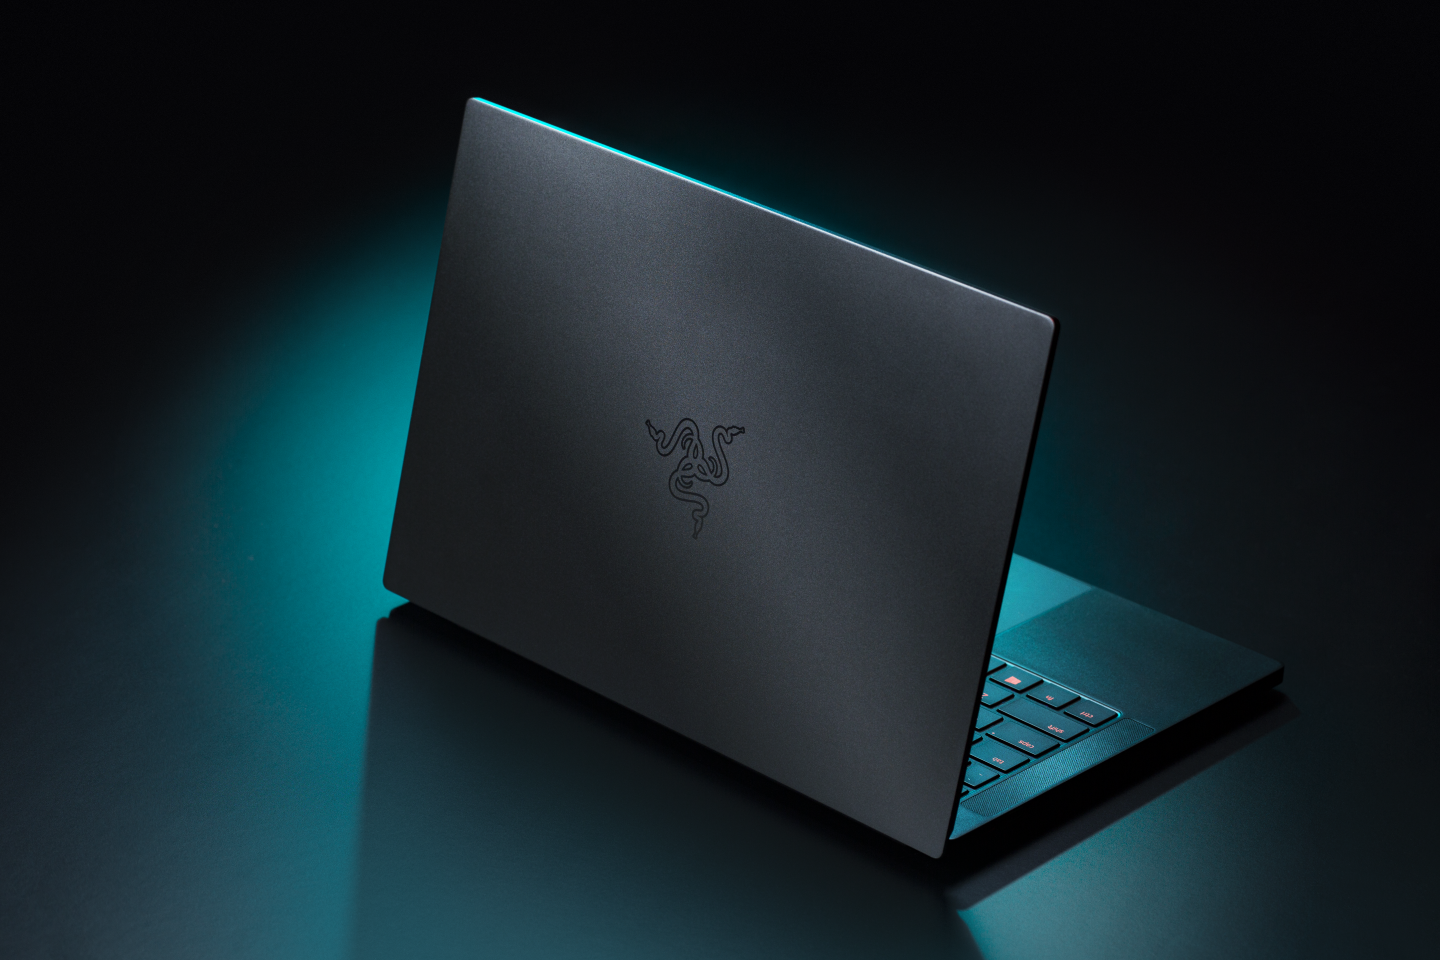 The Razer Blade Stealth 13 is powered by a 25-W version of Intel's 10th Gen Core i7-1065G7 processor and Nvidia GeForce GTX 1640 Ti graphics